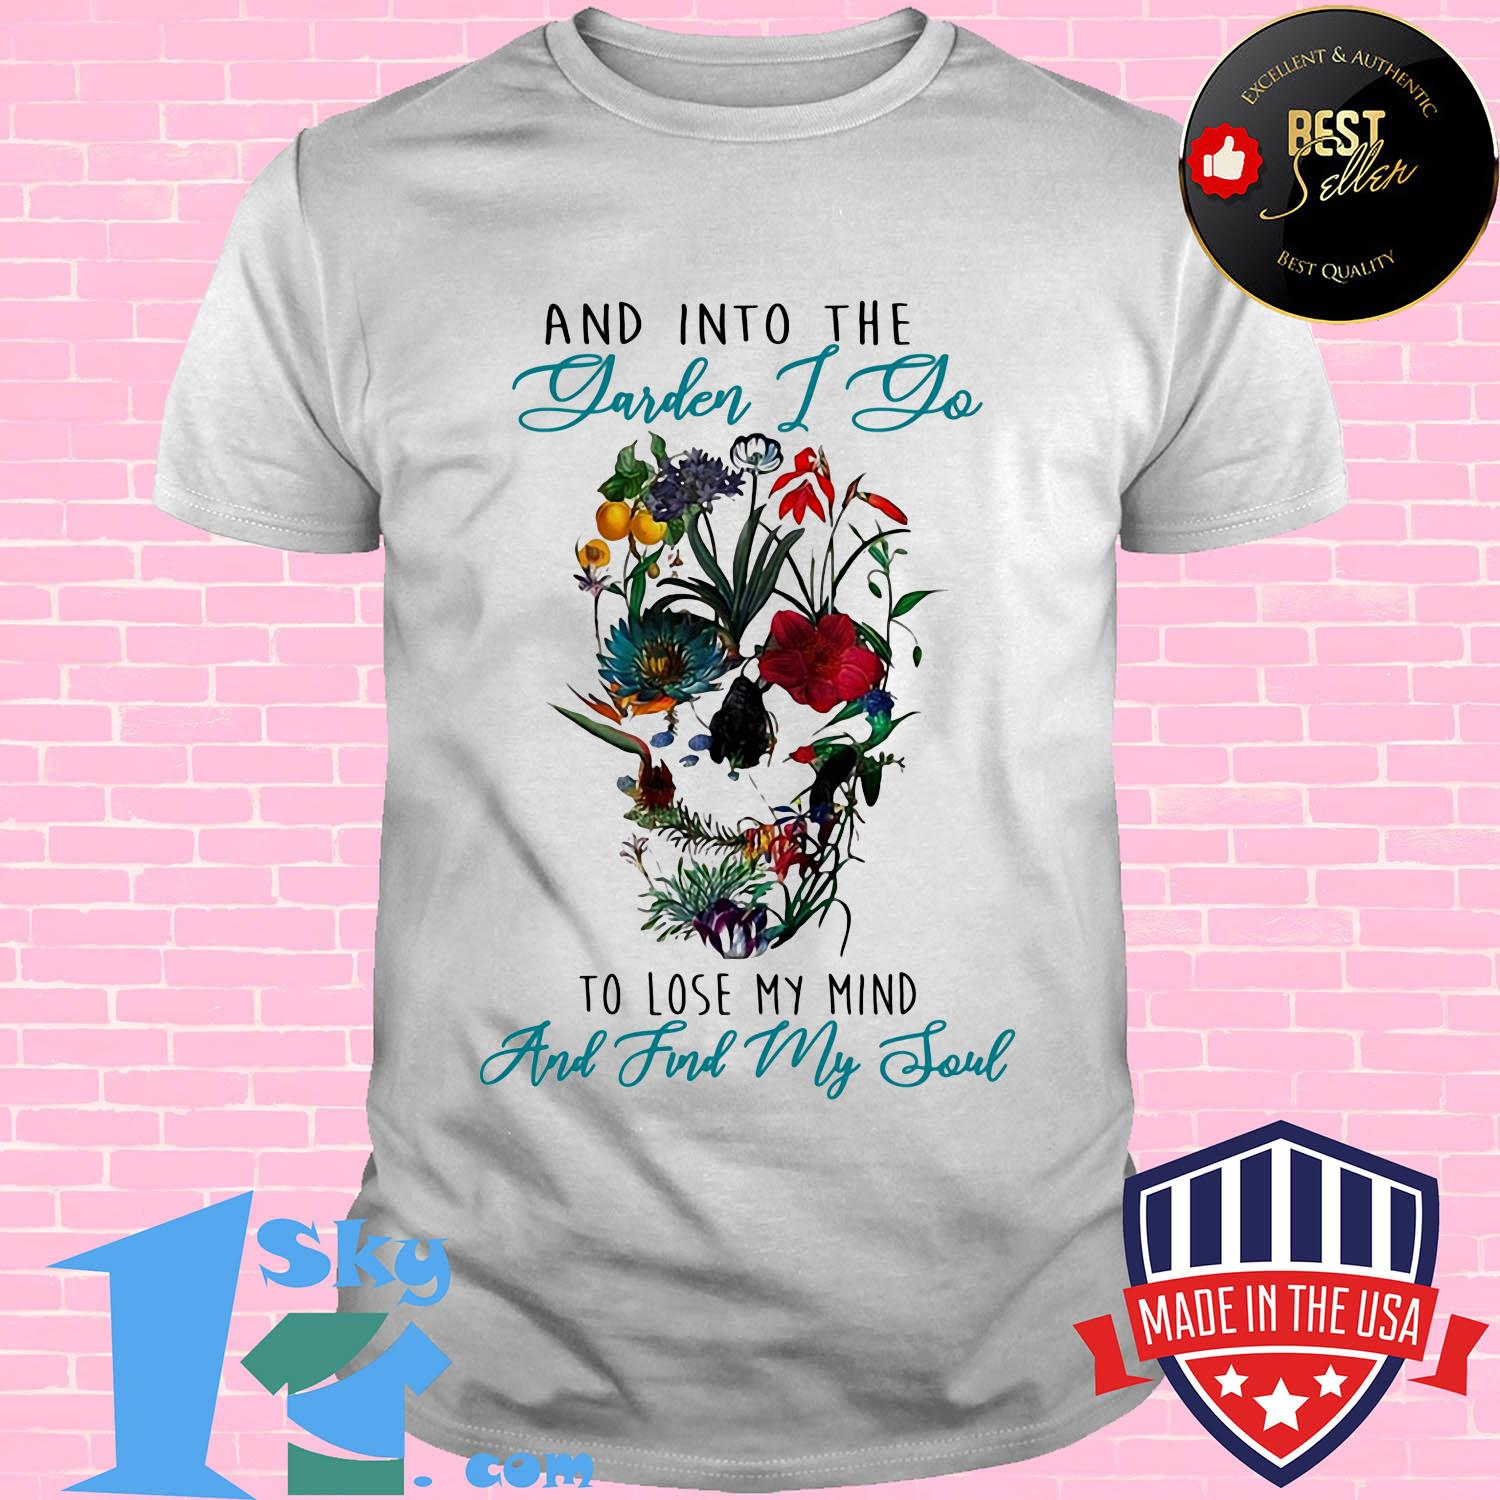 And into the garden I go to lose my mind skull flower shirt